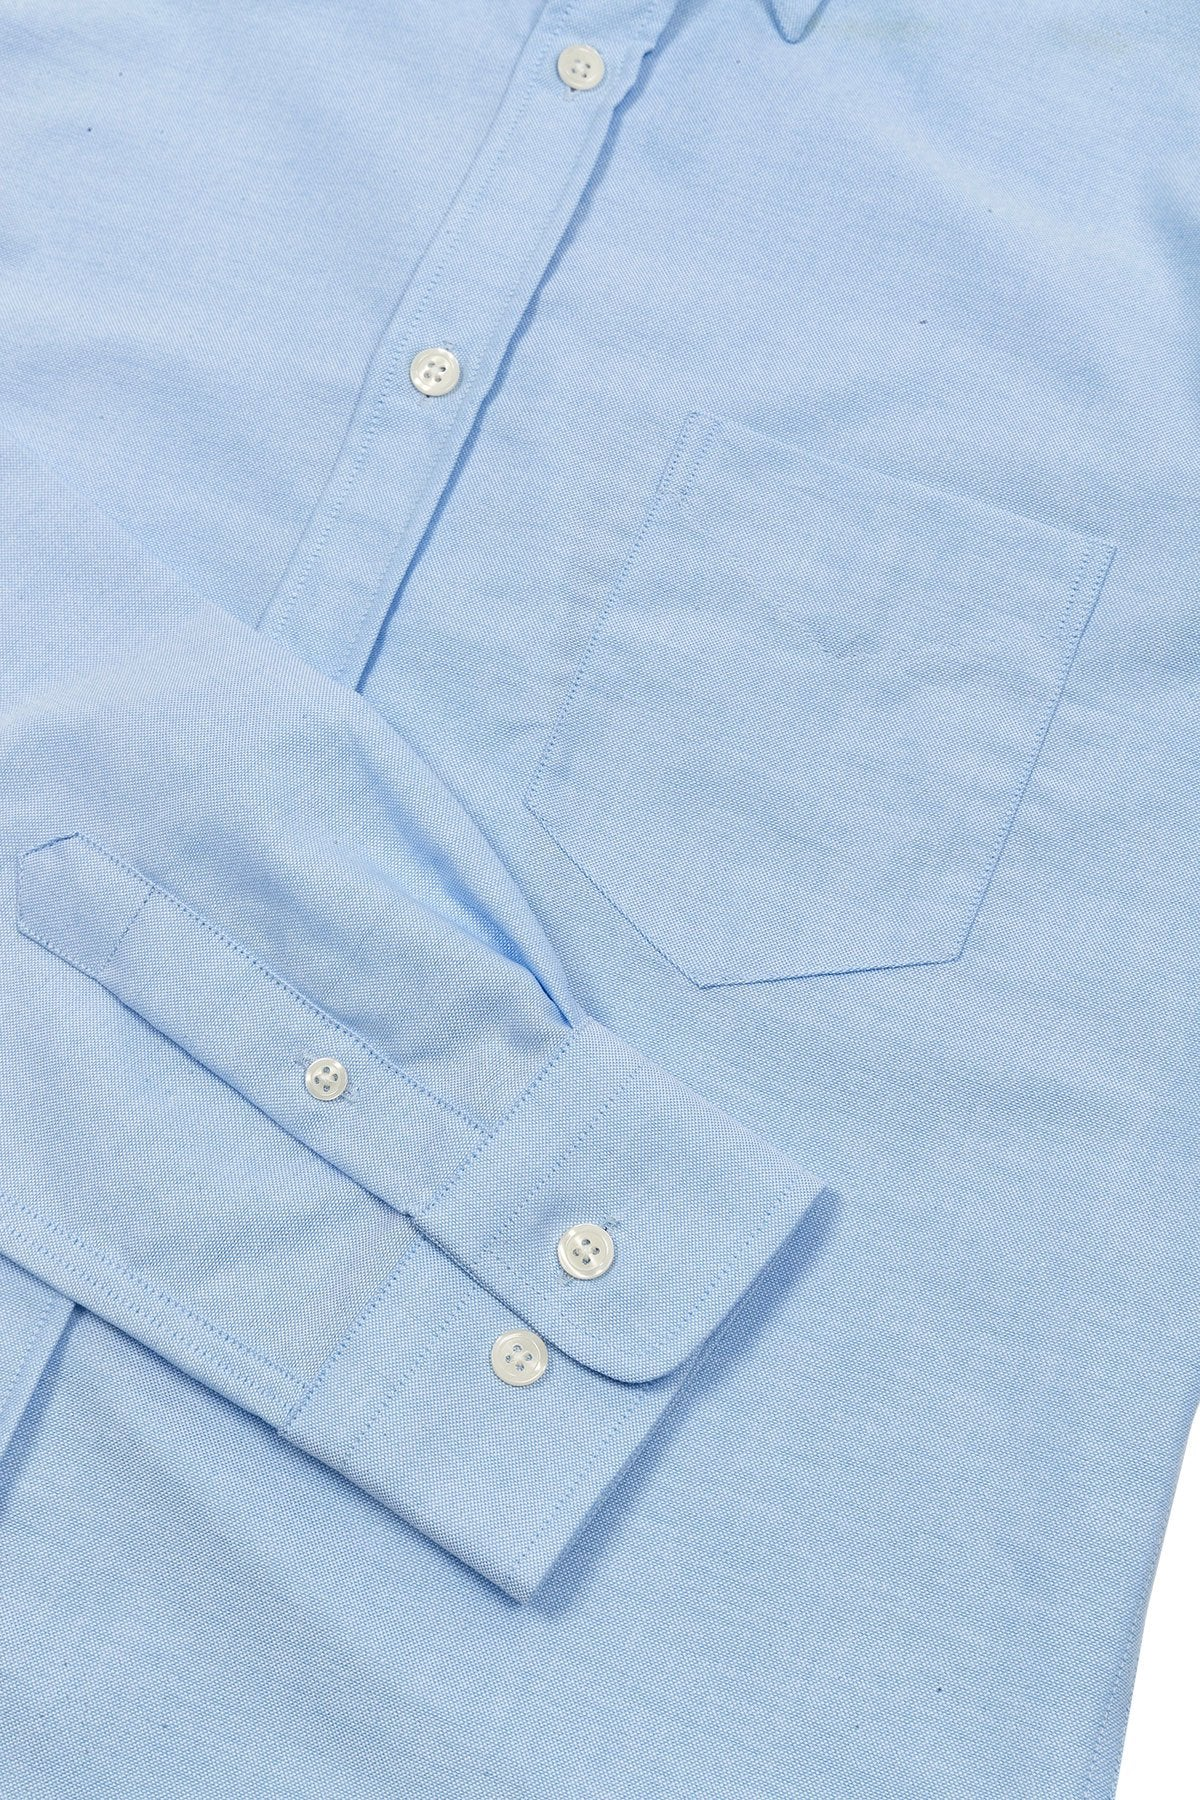 The Blue Oxford Shirt